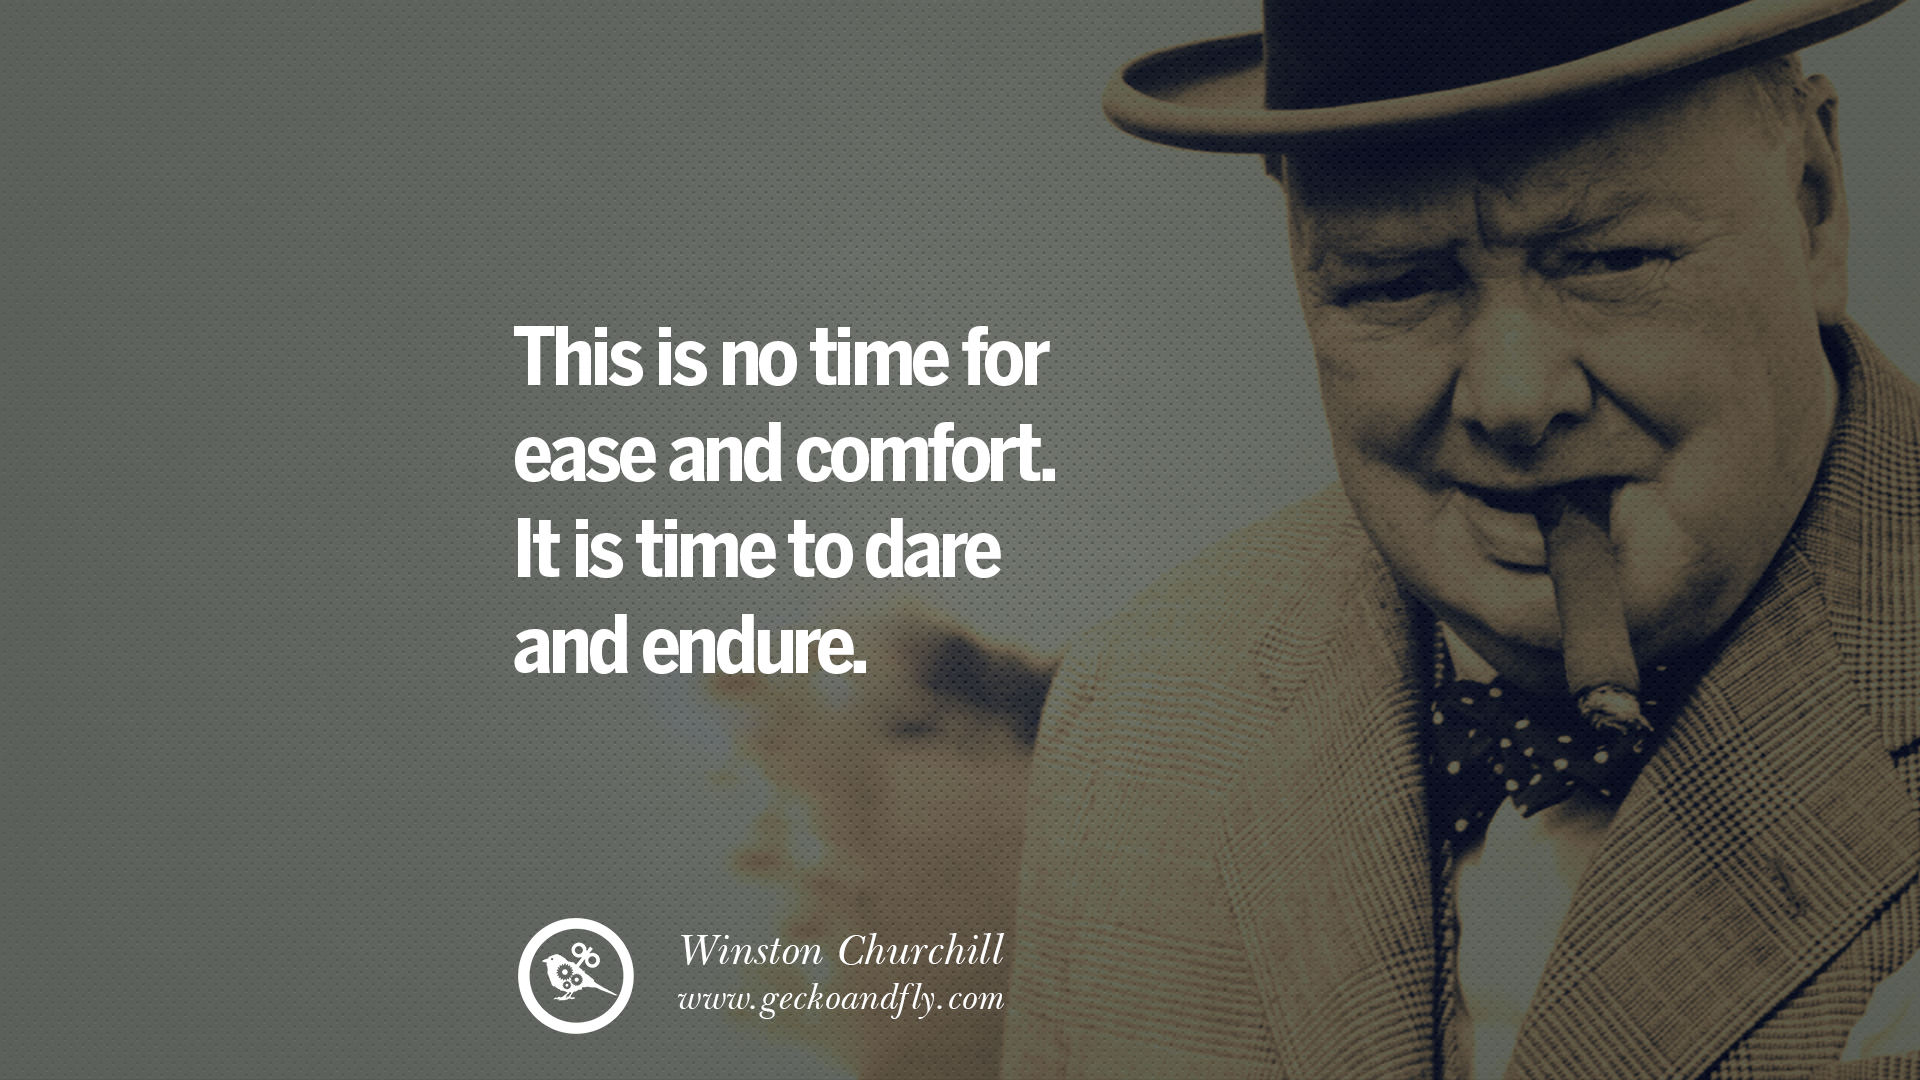 Psychology Wallpaper Quotes 30 Sir Winston Churchill Quotes And Speeches On Success